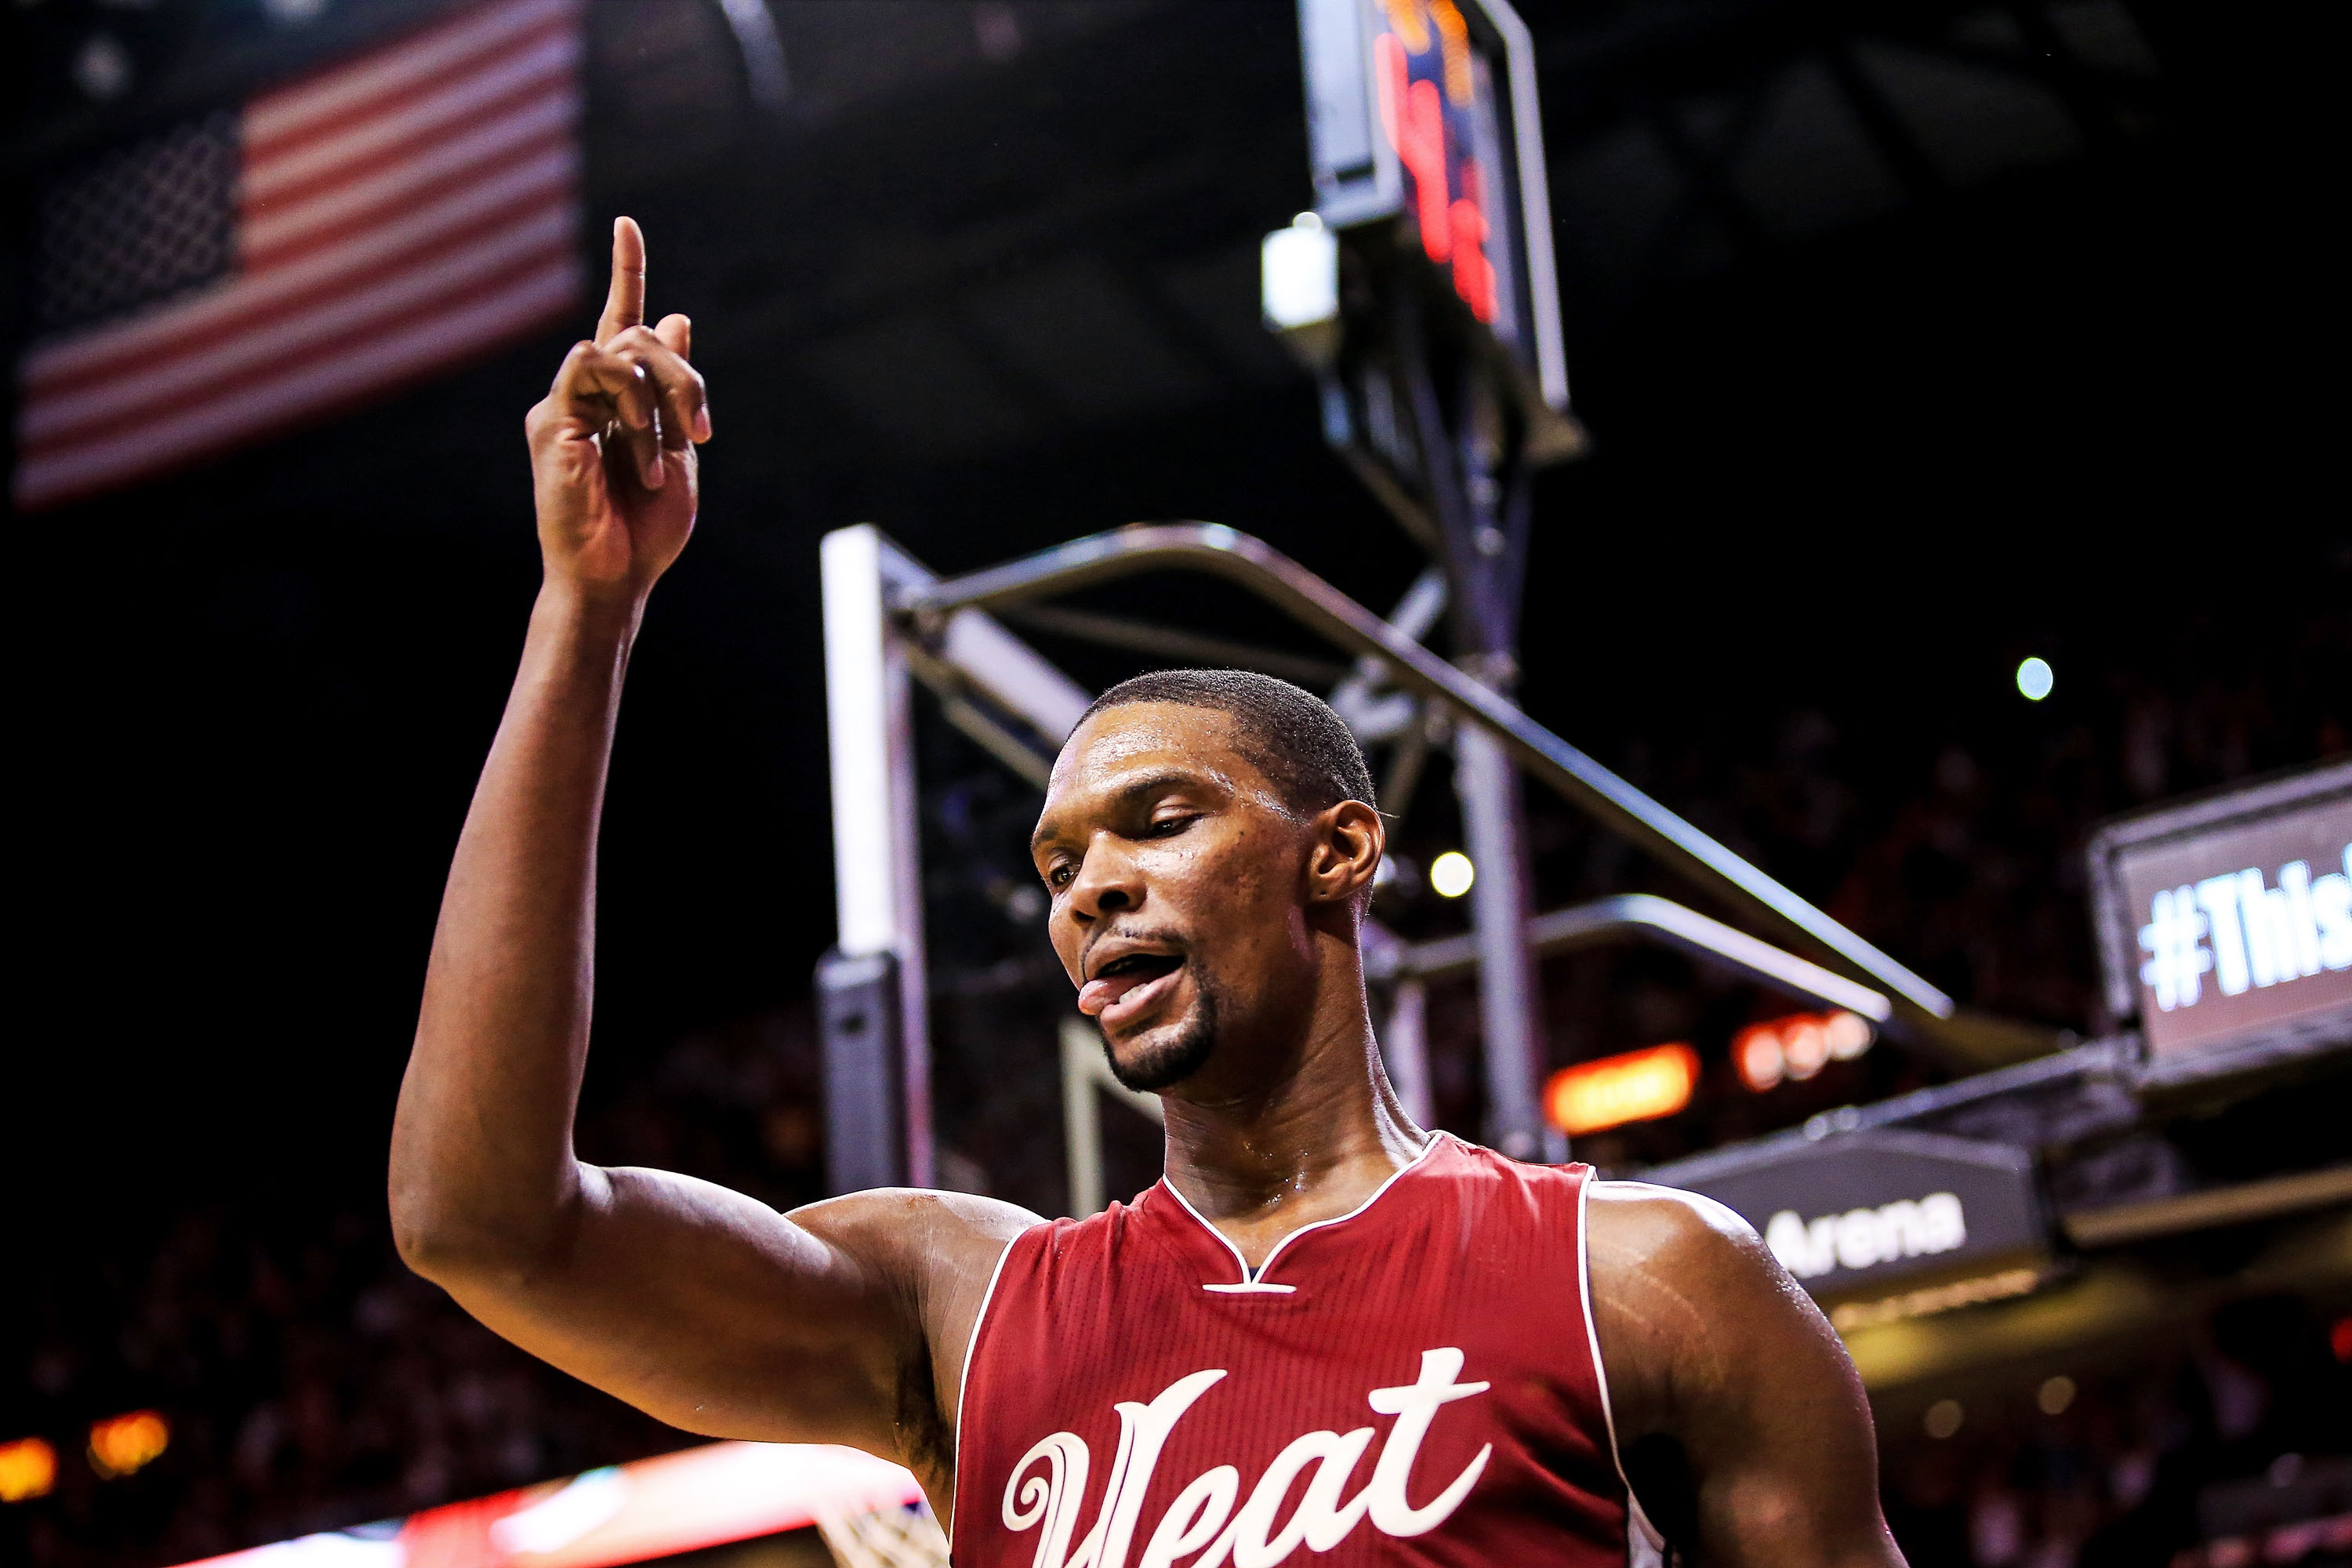 Chris Bosh was a dominant big man and and NBA champion with the Miami Heat. His NBA career, however, ultimately ended way too soon.